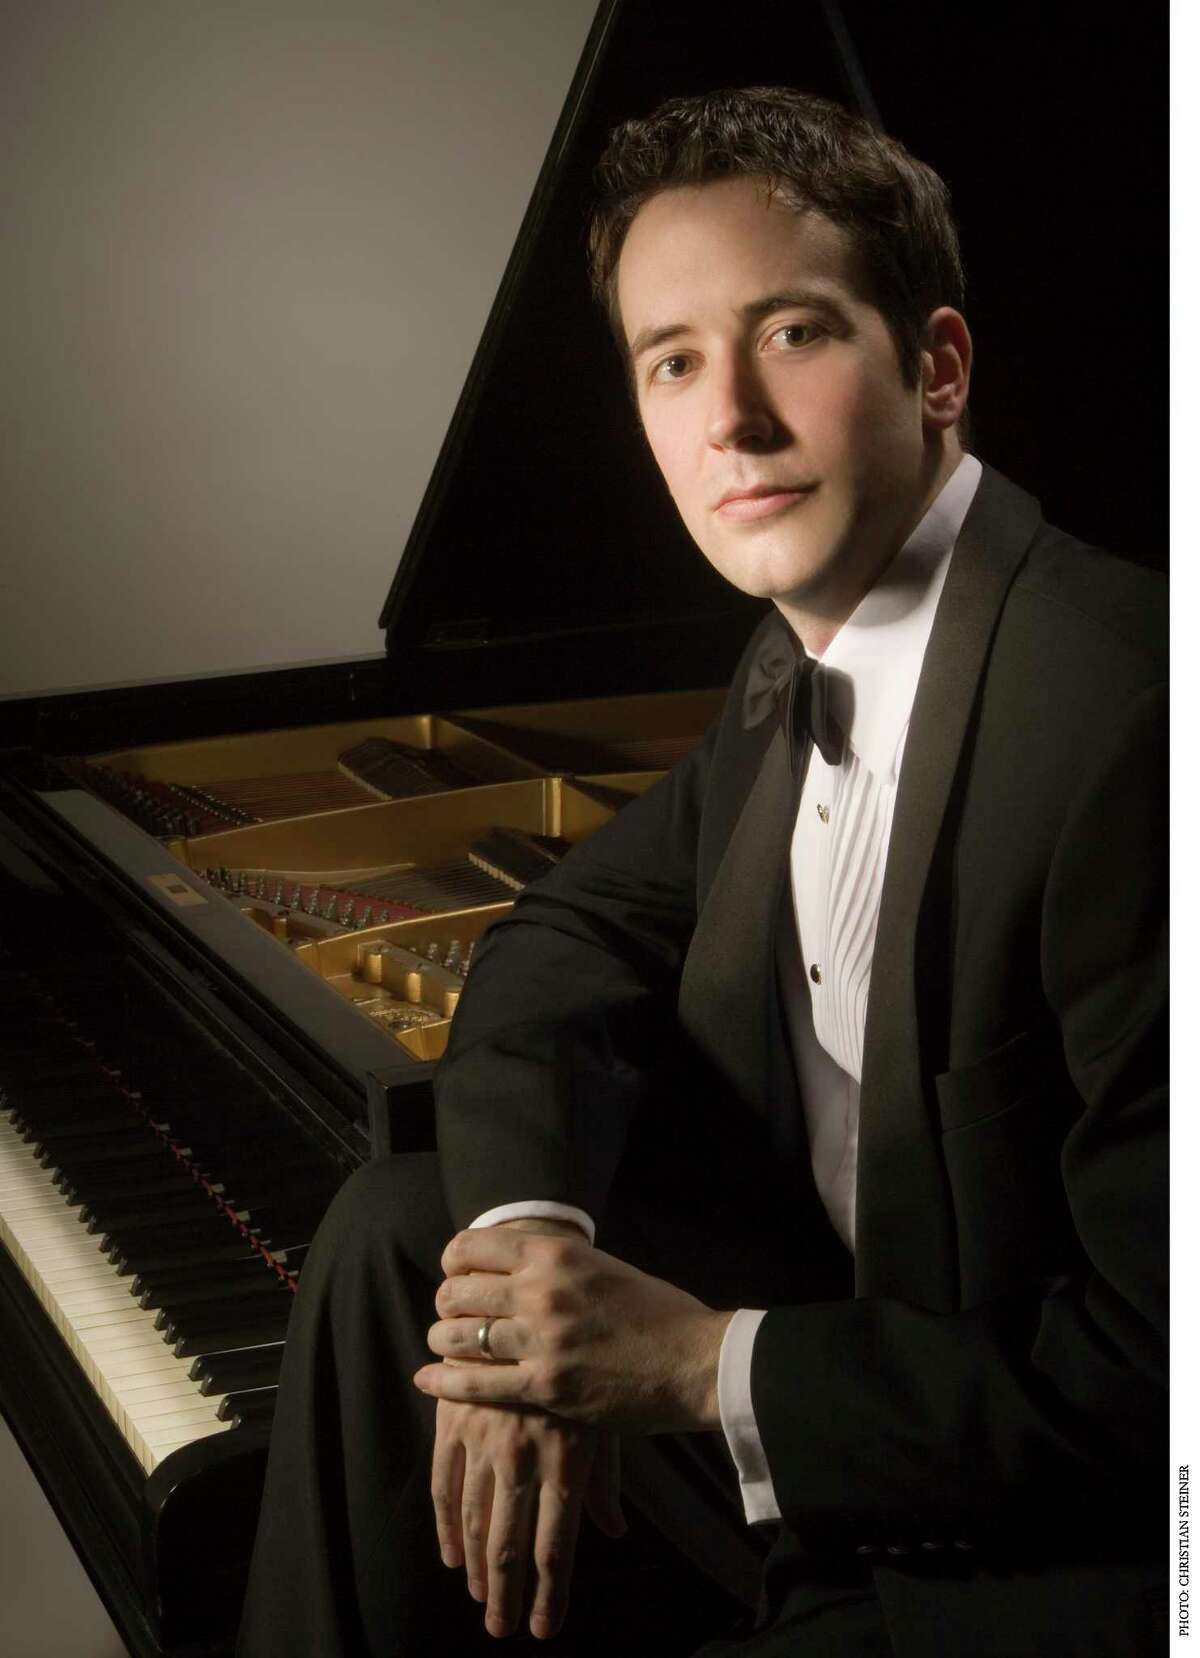 Music historians say Beethoven wrote his Piano Concerto No. 1 - fun fact: it came after Piano Concerto No. 2 - to show off his chops. The 27-year-old composer was seated at the piano when the concerto premiered in 1798. British pianist Philip Edward Fisher (pictured), whose resume ranges from contemporary works to a pair of recordings of Handel's keyboard suites, will perform the piece with the San Antonio Symphony. The program also includes Brahms' Symphony No. 2 and